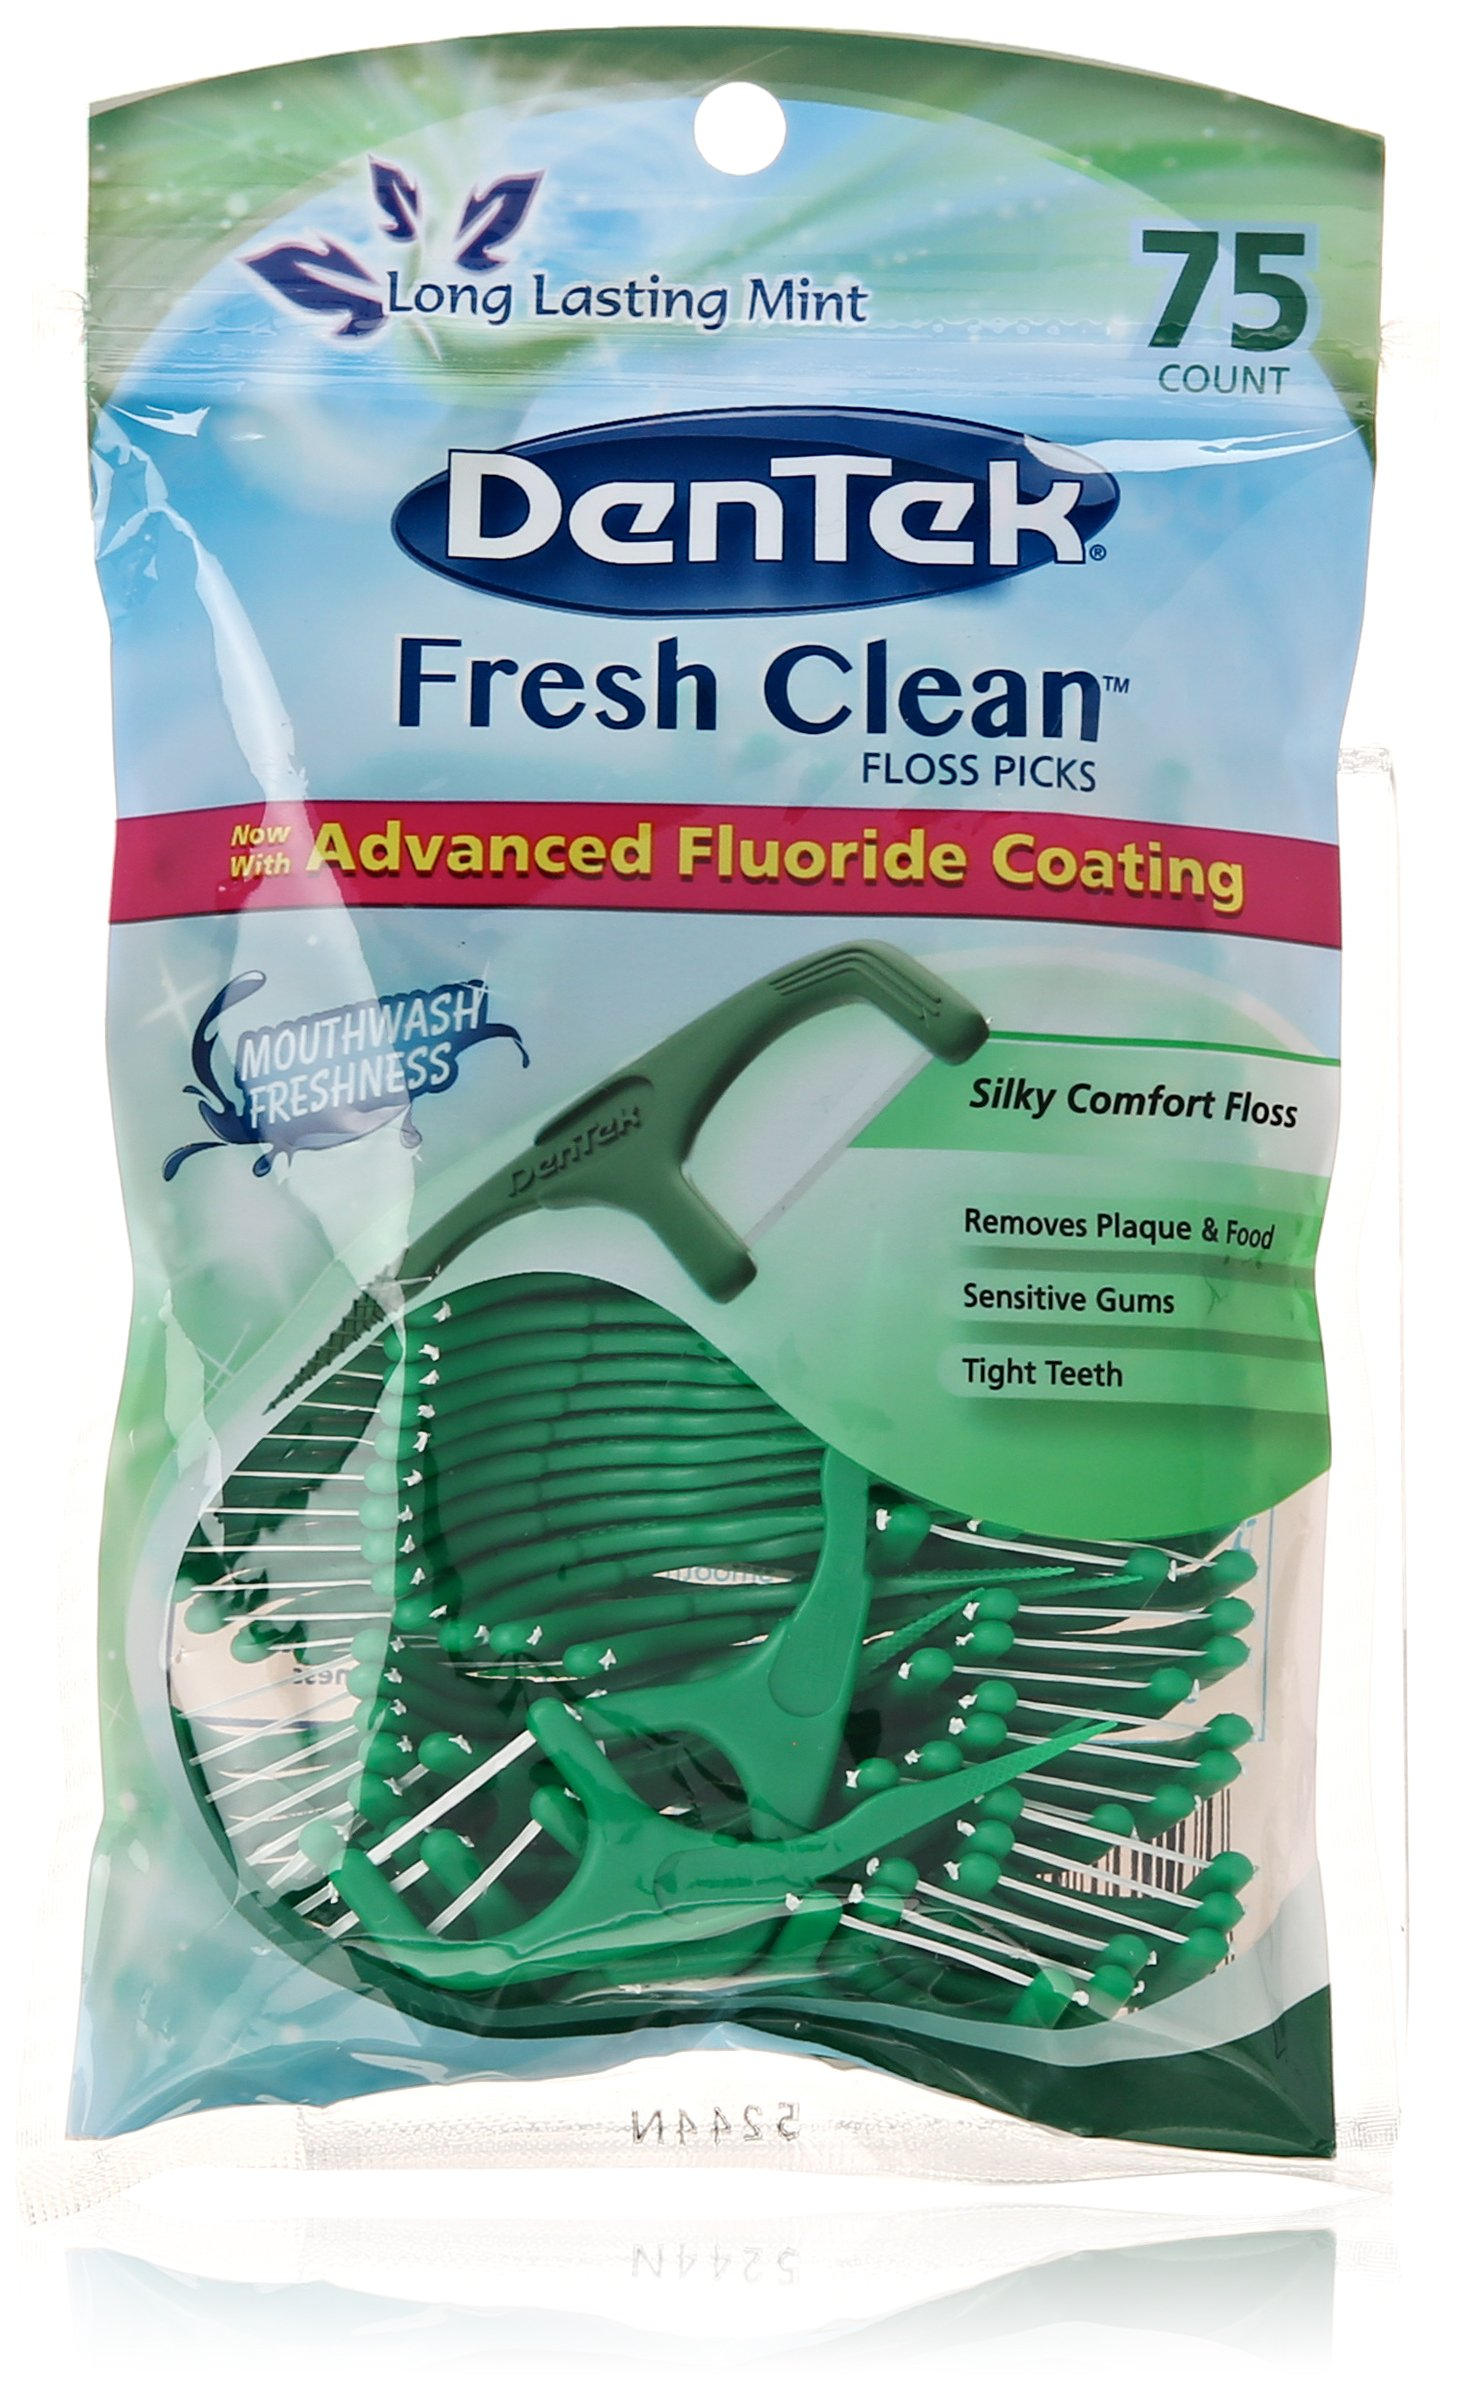 DenTek Fresh Clean Floss Pick, Removes Plaque and Food, 75 Count, Packaging May Vary